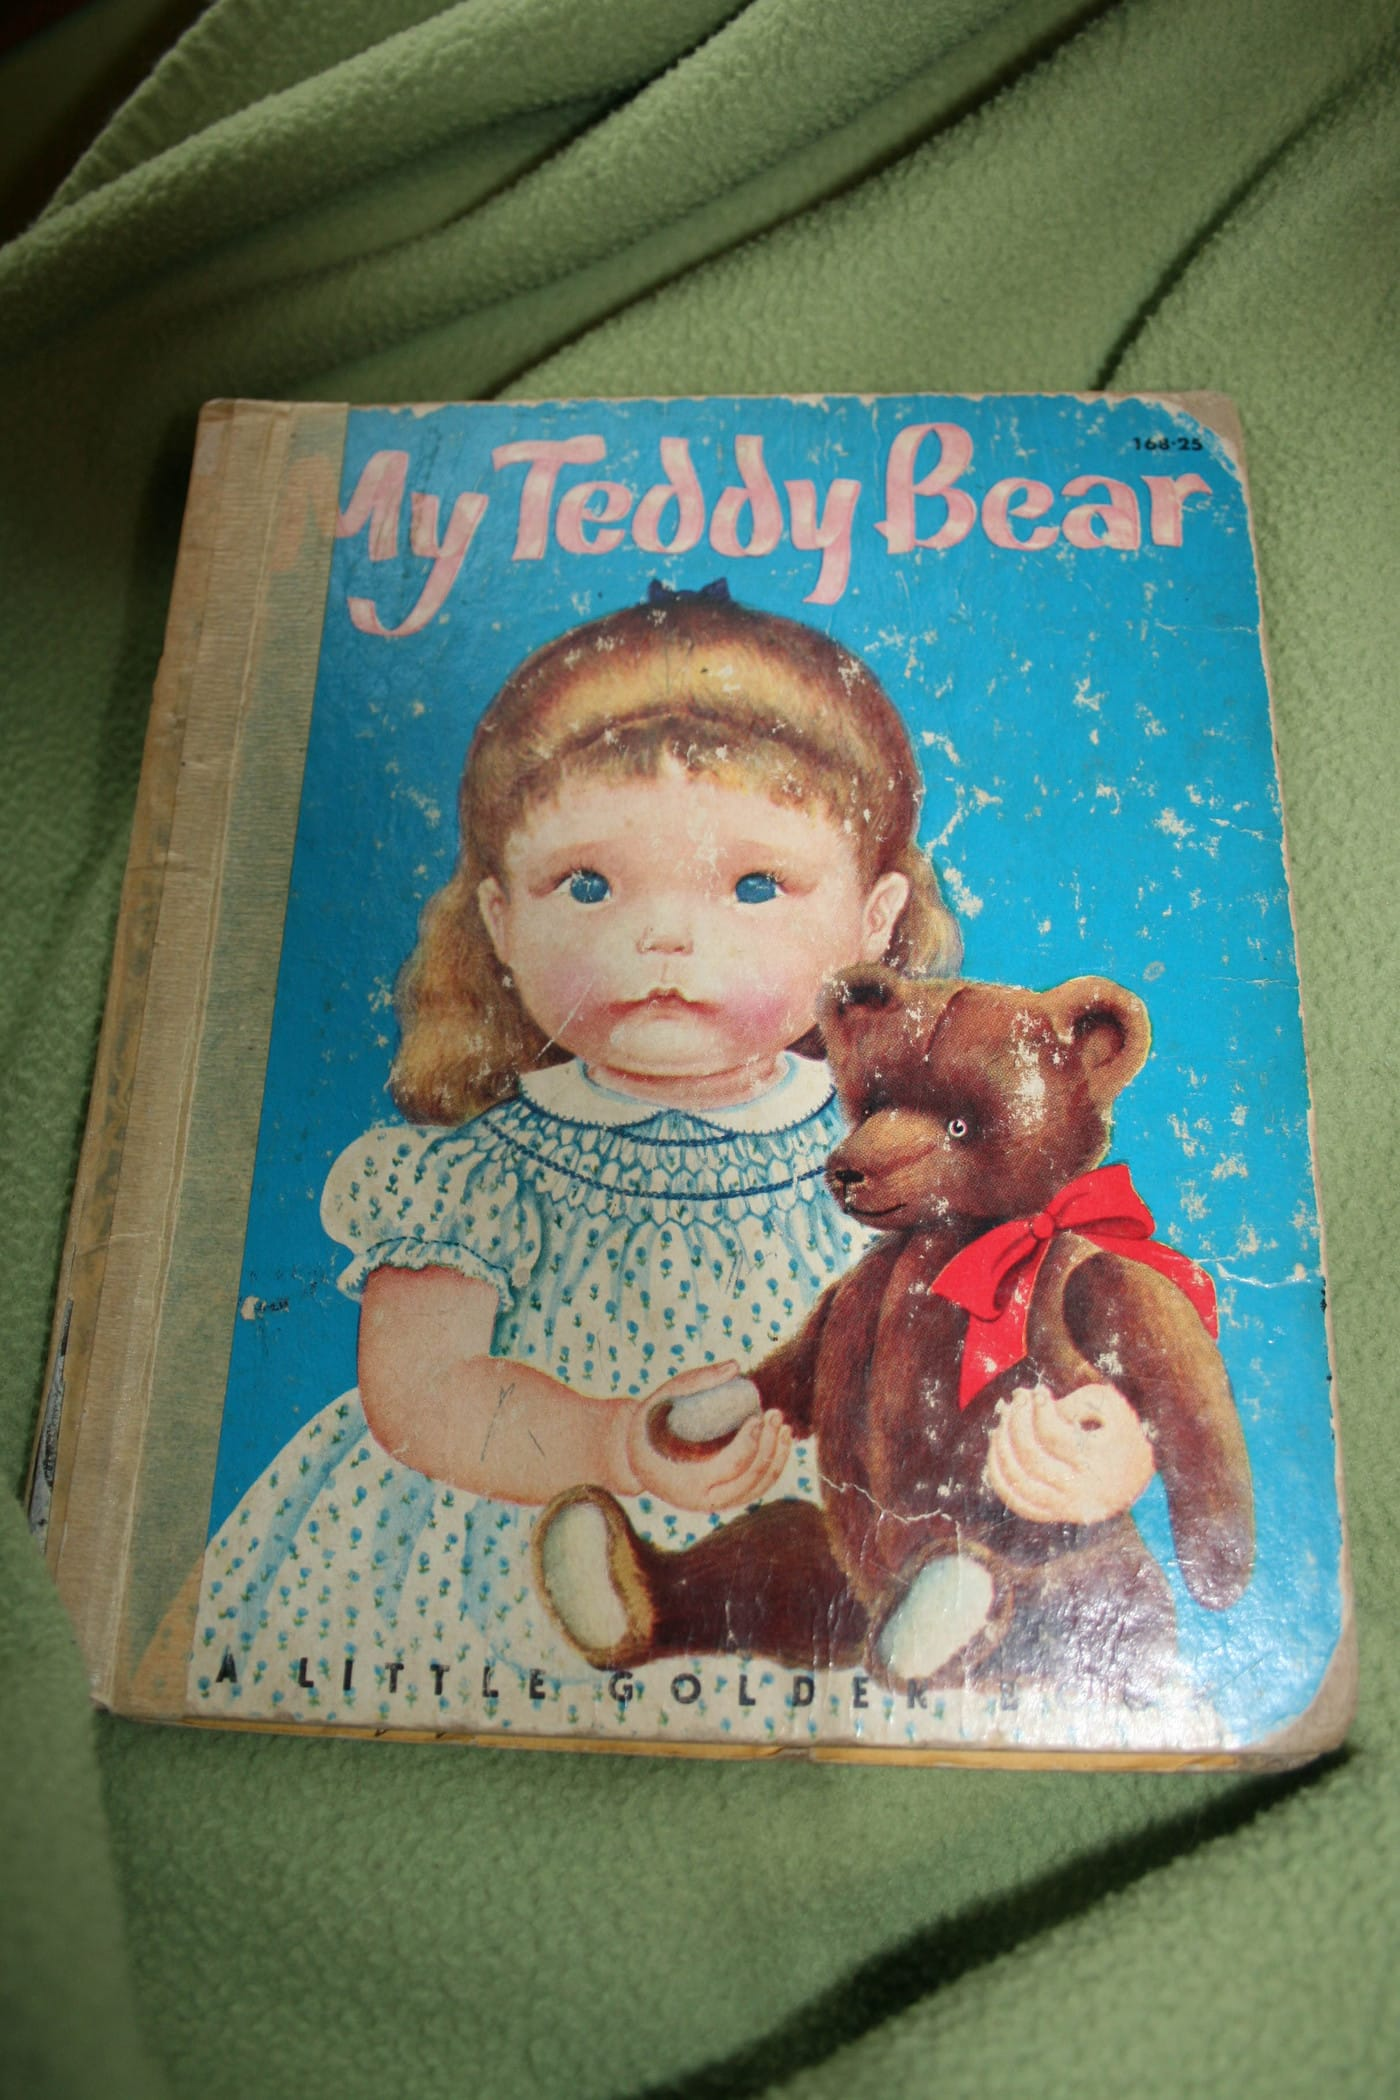 My Teddy Bear Book by Patsy Scarry (Author) and Eloise Wilkin (Illustrator). Ouch! Naughty Lion, you mustn't bite!